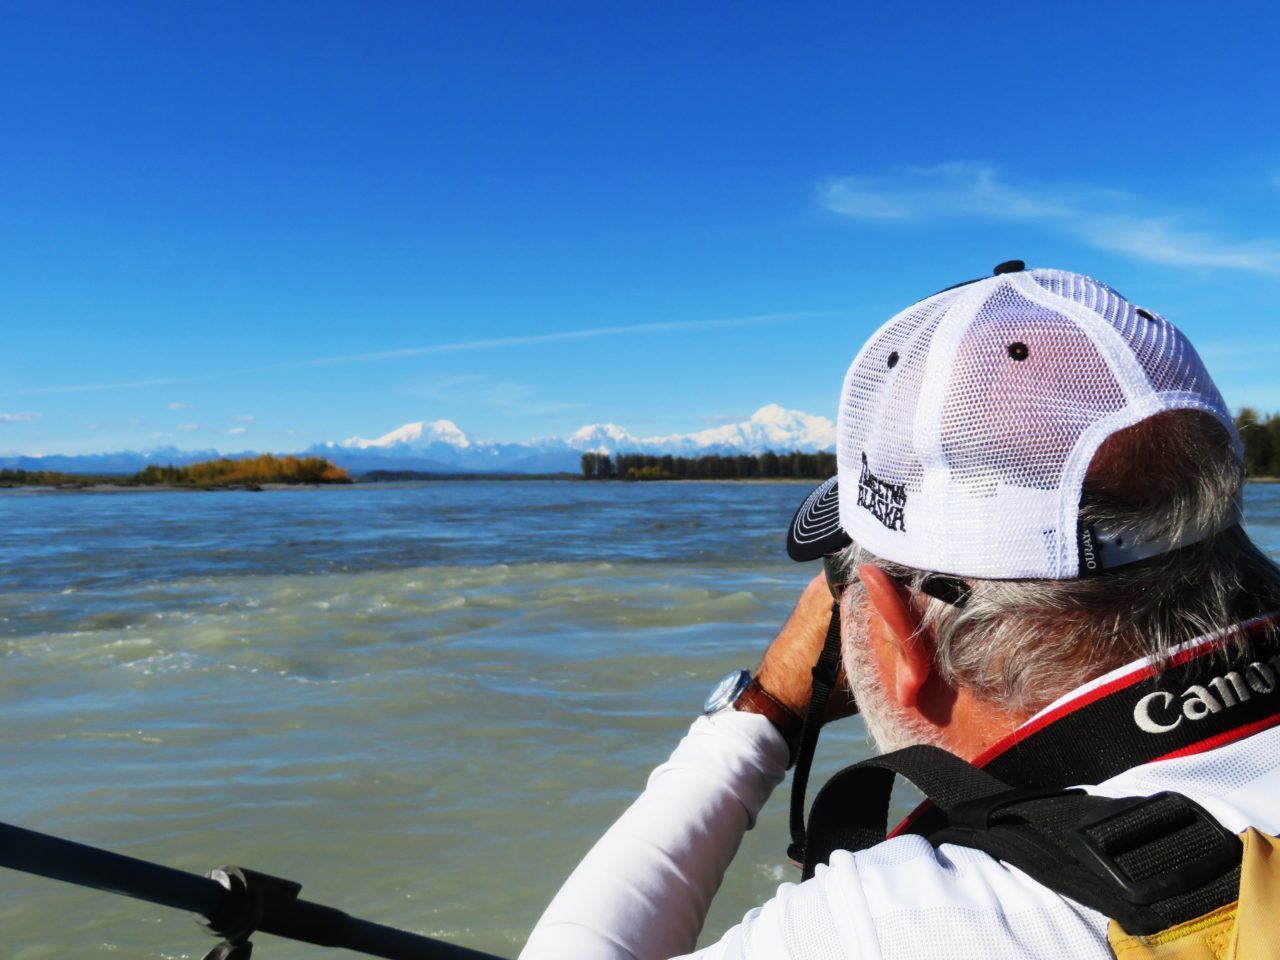 Rafting down the Talkeetna River during our Alaska Cruise with Princess Cruises